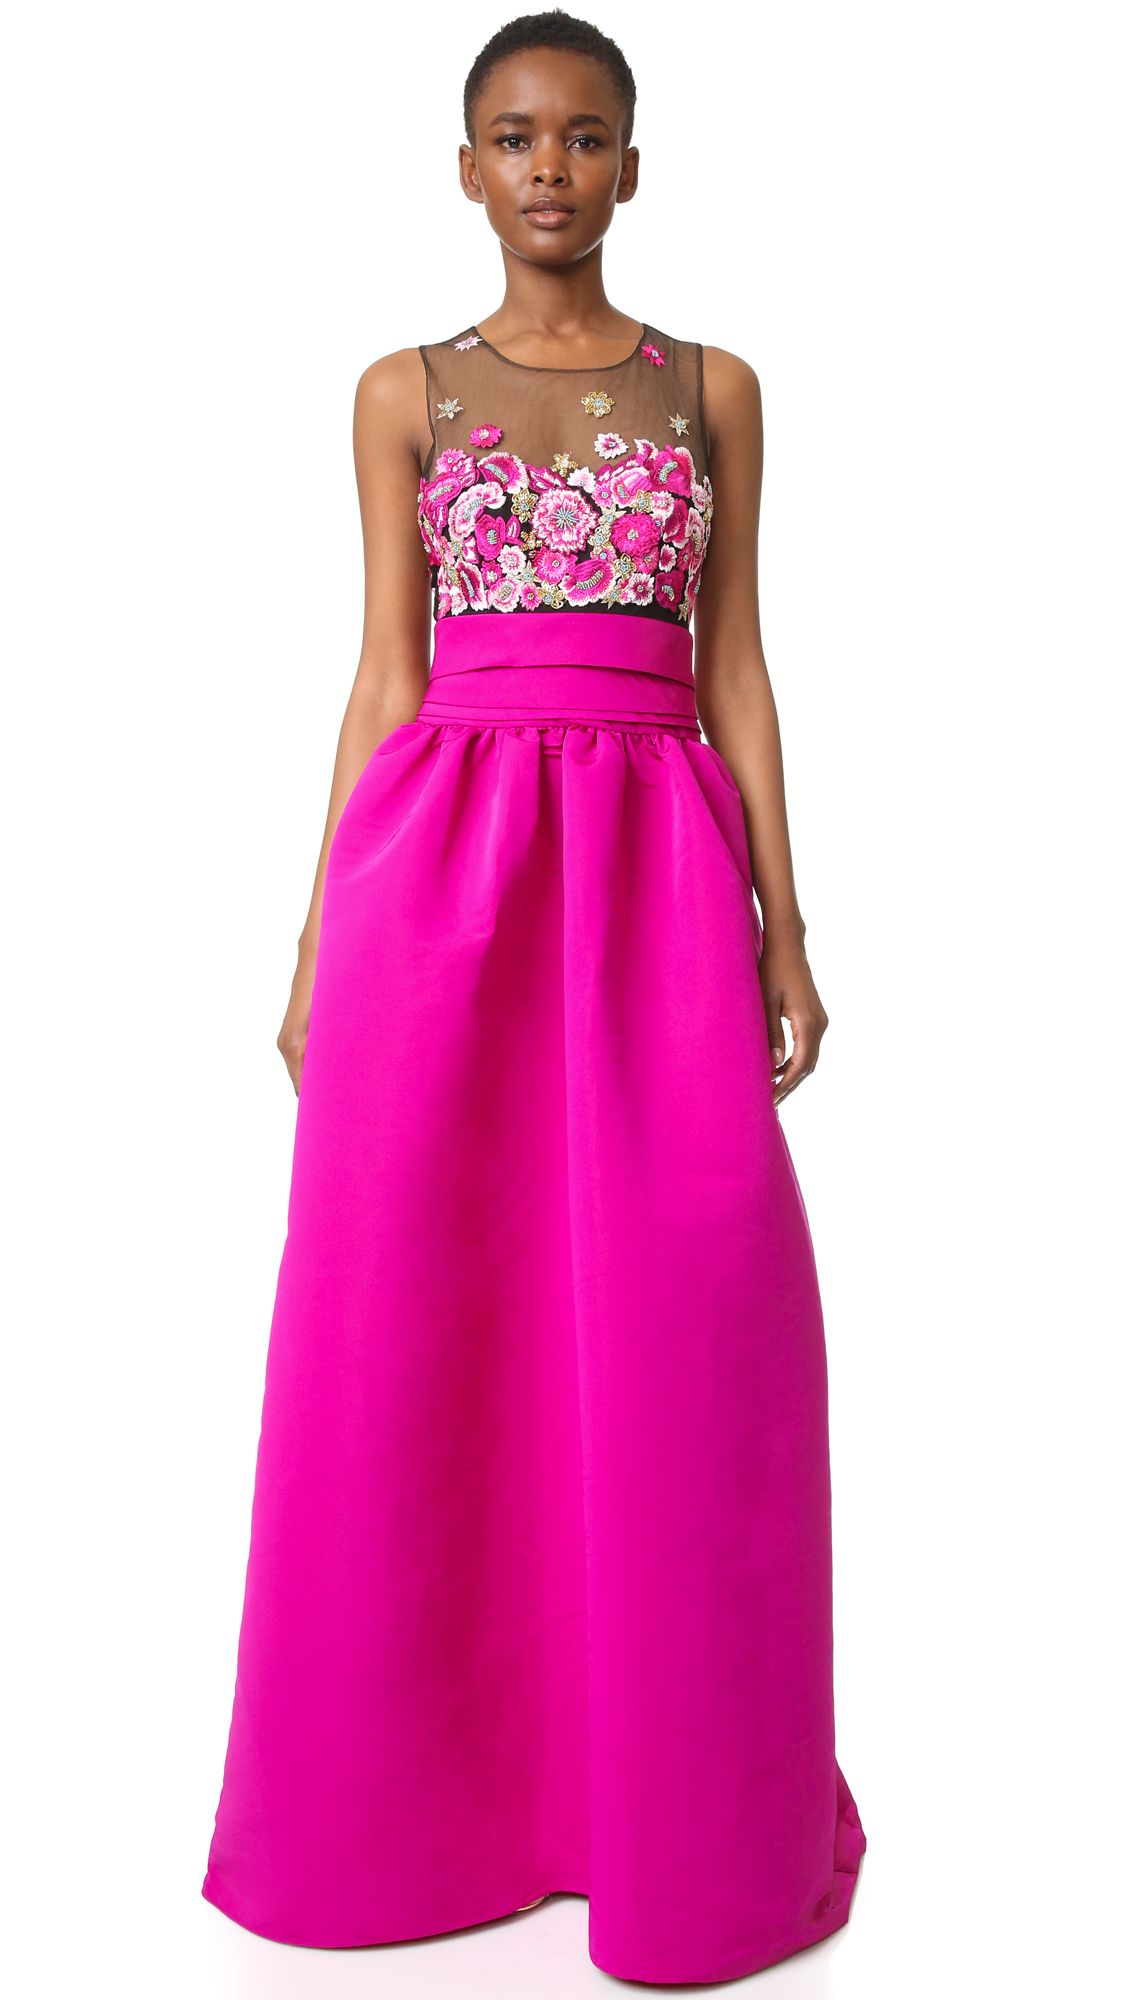 Marchesa Notte Embroidered Ball Gown With Pockets - Fuchsia | Shop ...